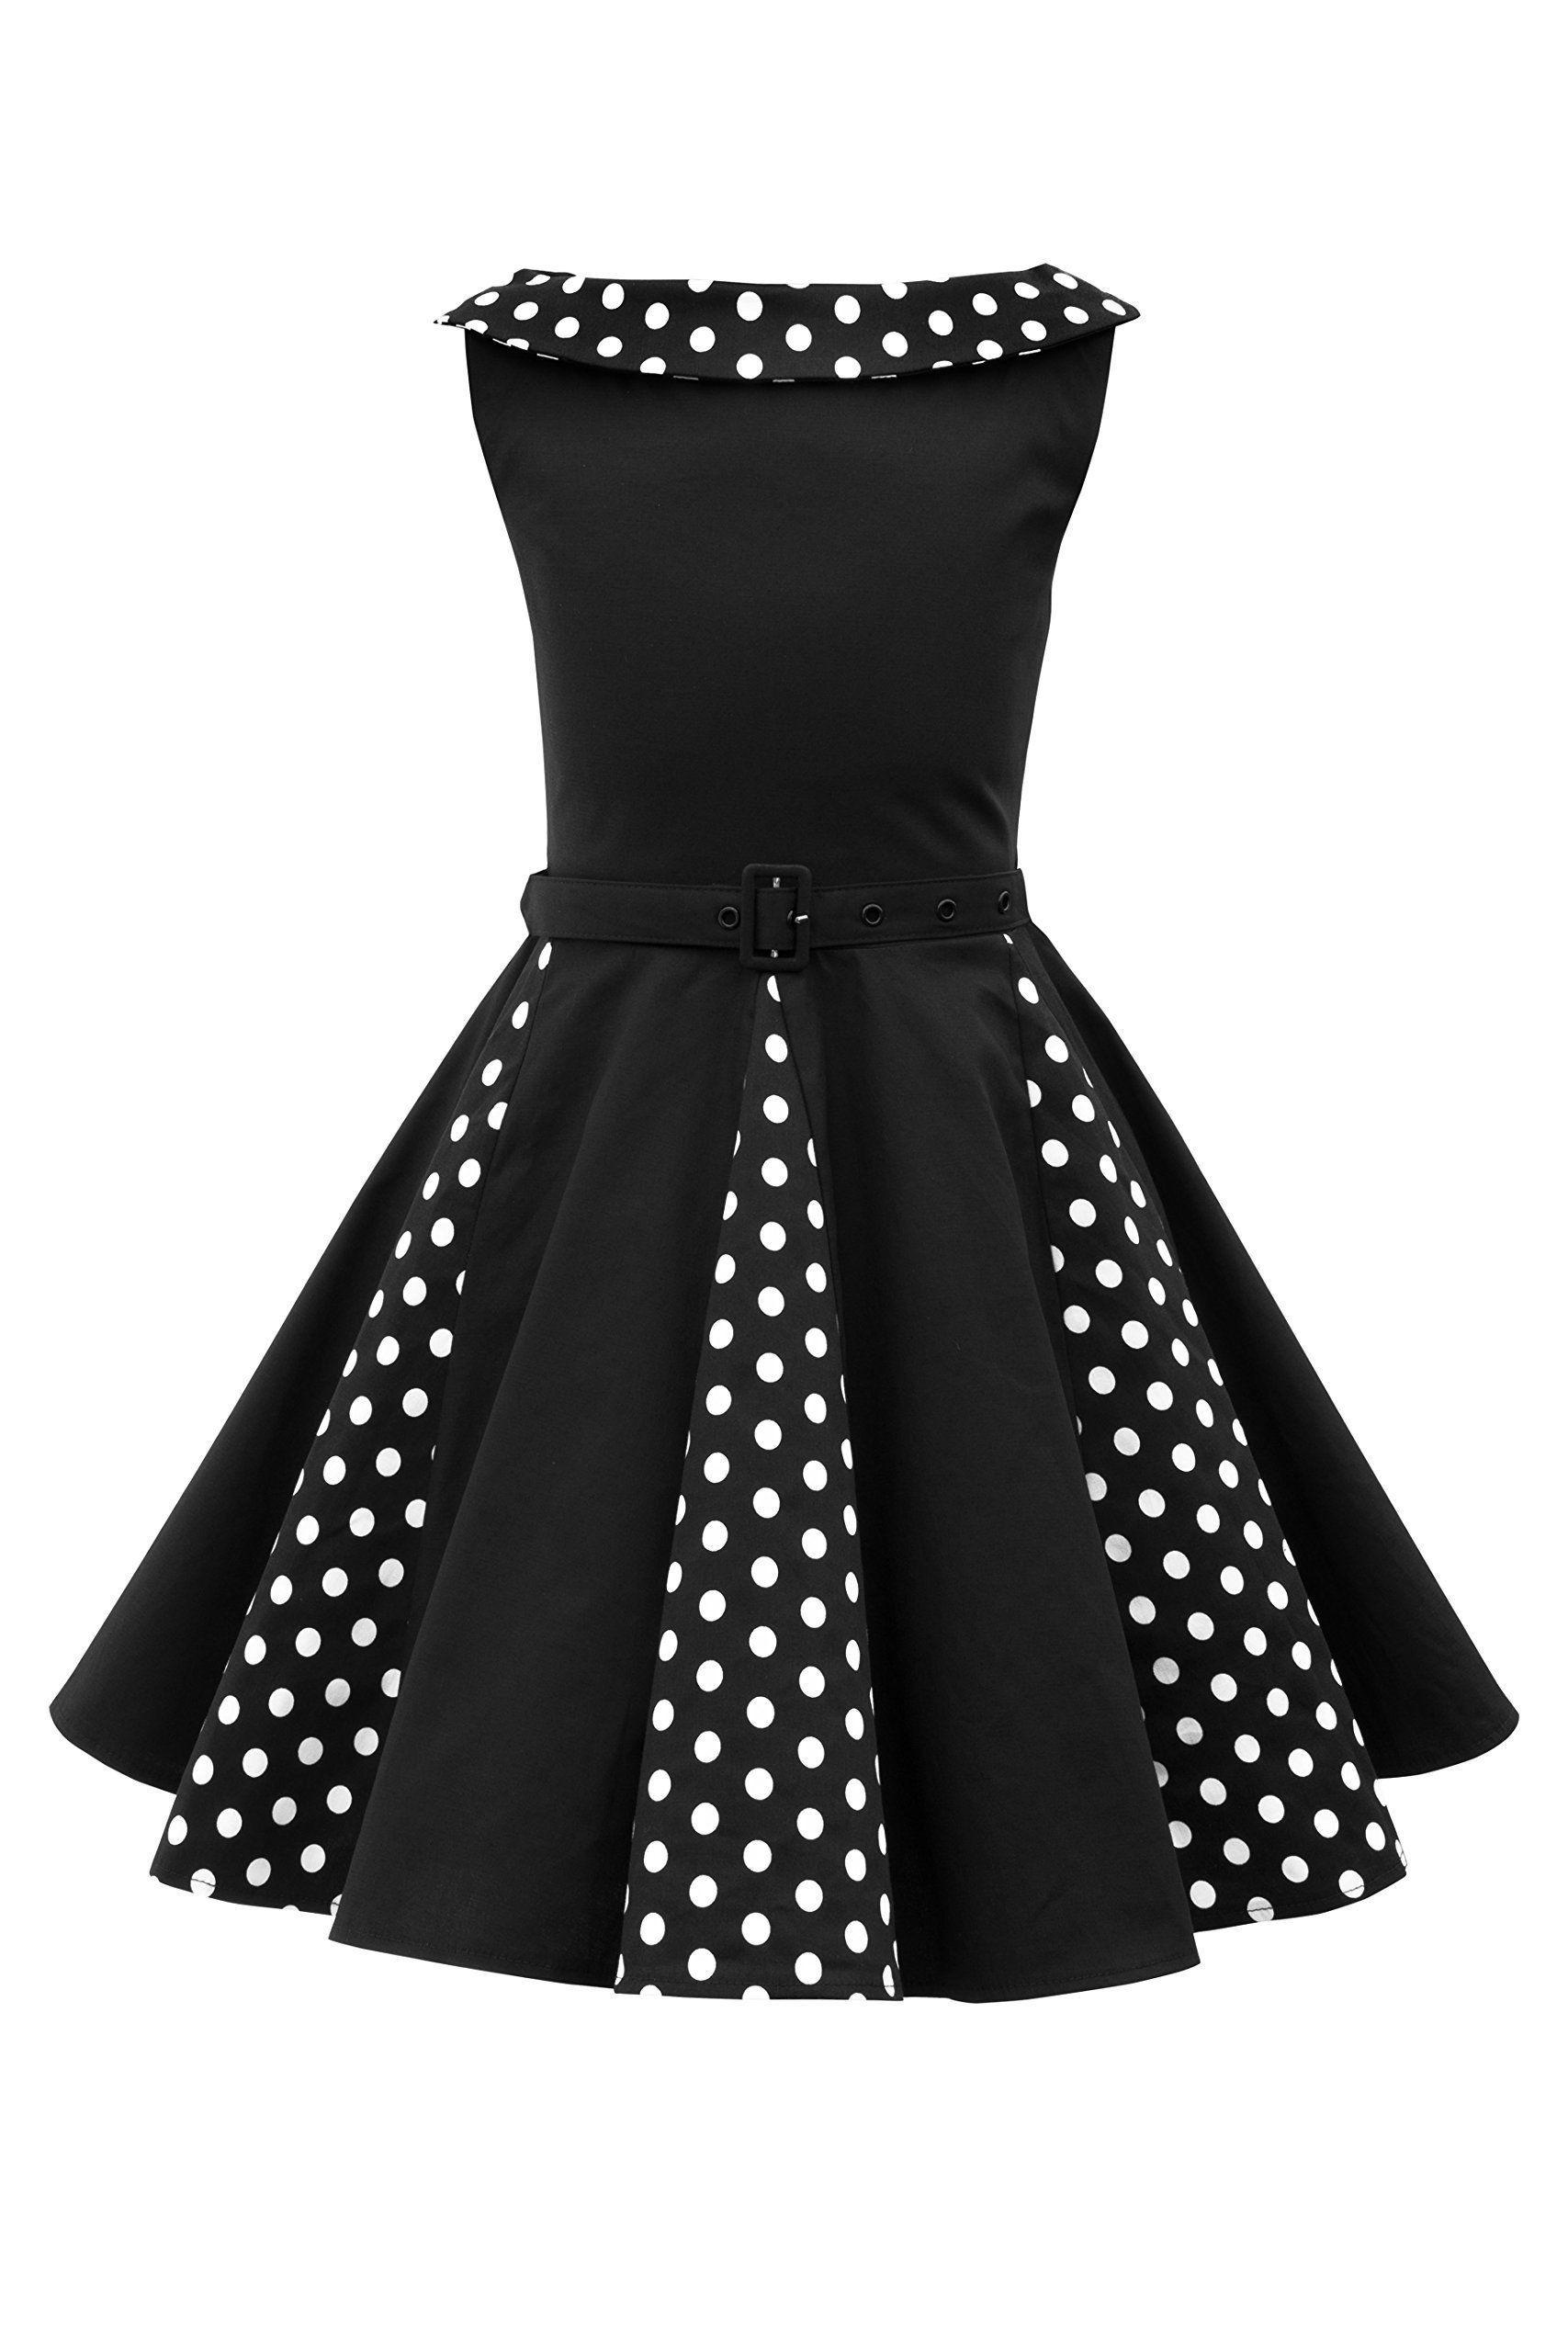 12969972d BlackButterfly Kids Alexia Vintage Polka Dot 50s Girls Dress Black 78 yrs  >>> You can find out more details at the link of the image.